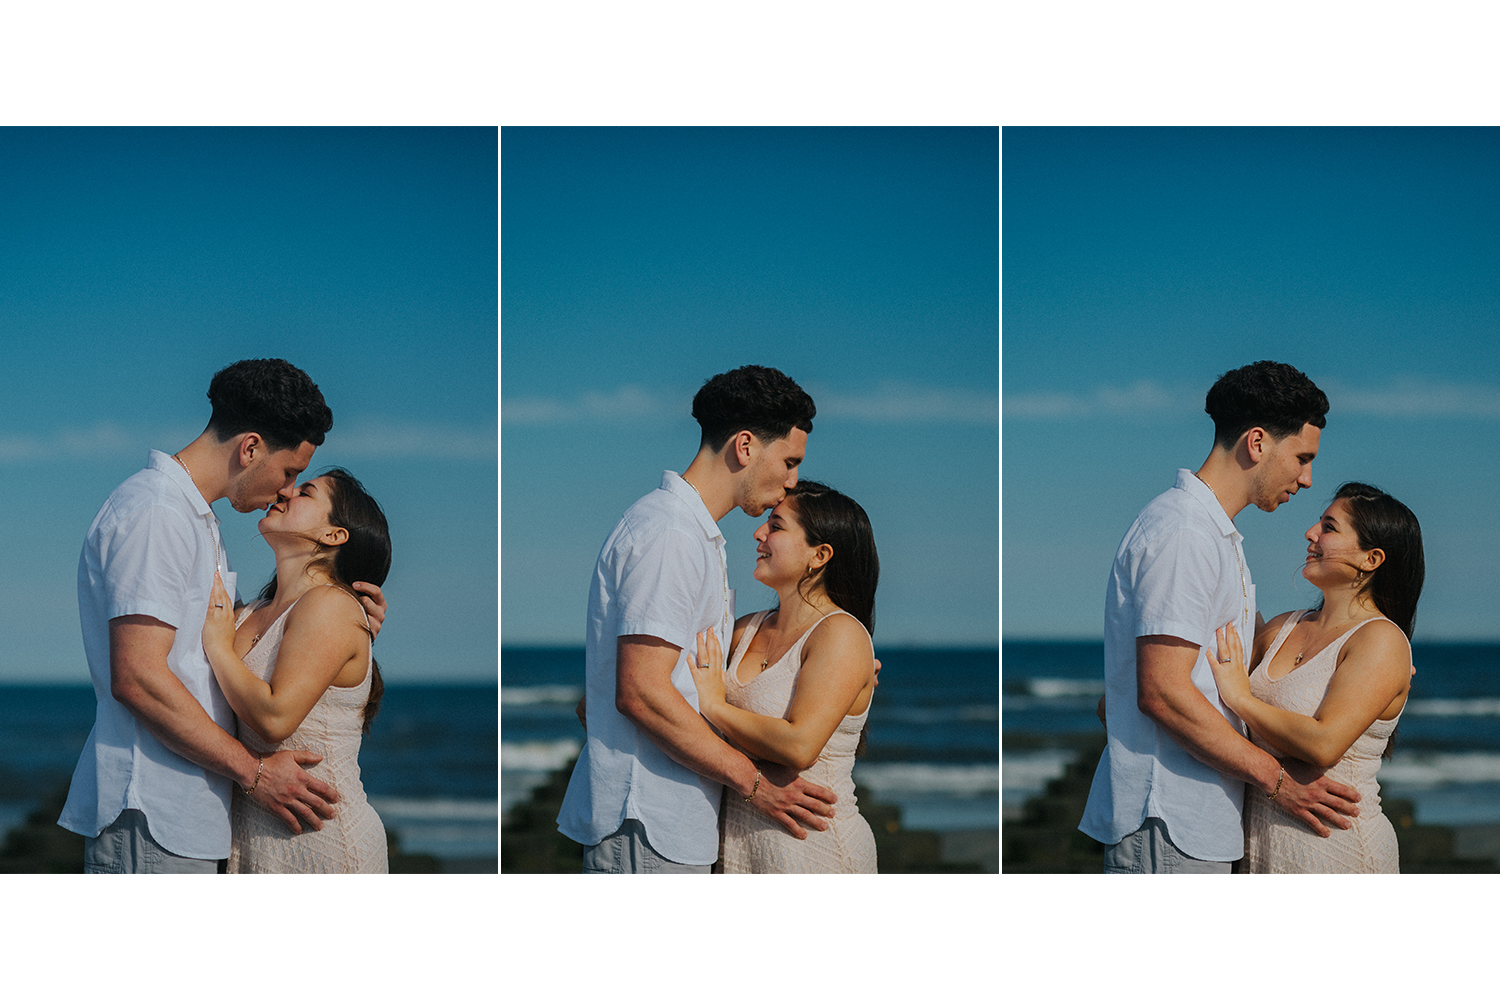 New_Jersey_Wedding_Photography_Engagement_Session_Beach_Session_Couple_008.jpg